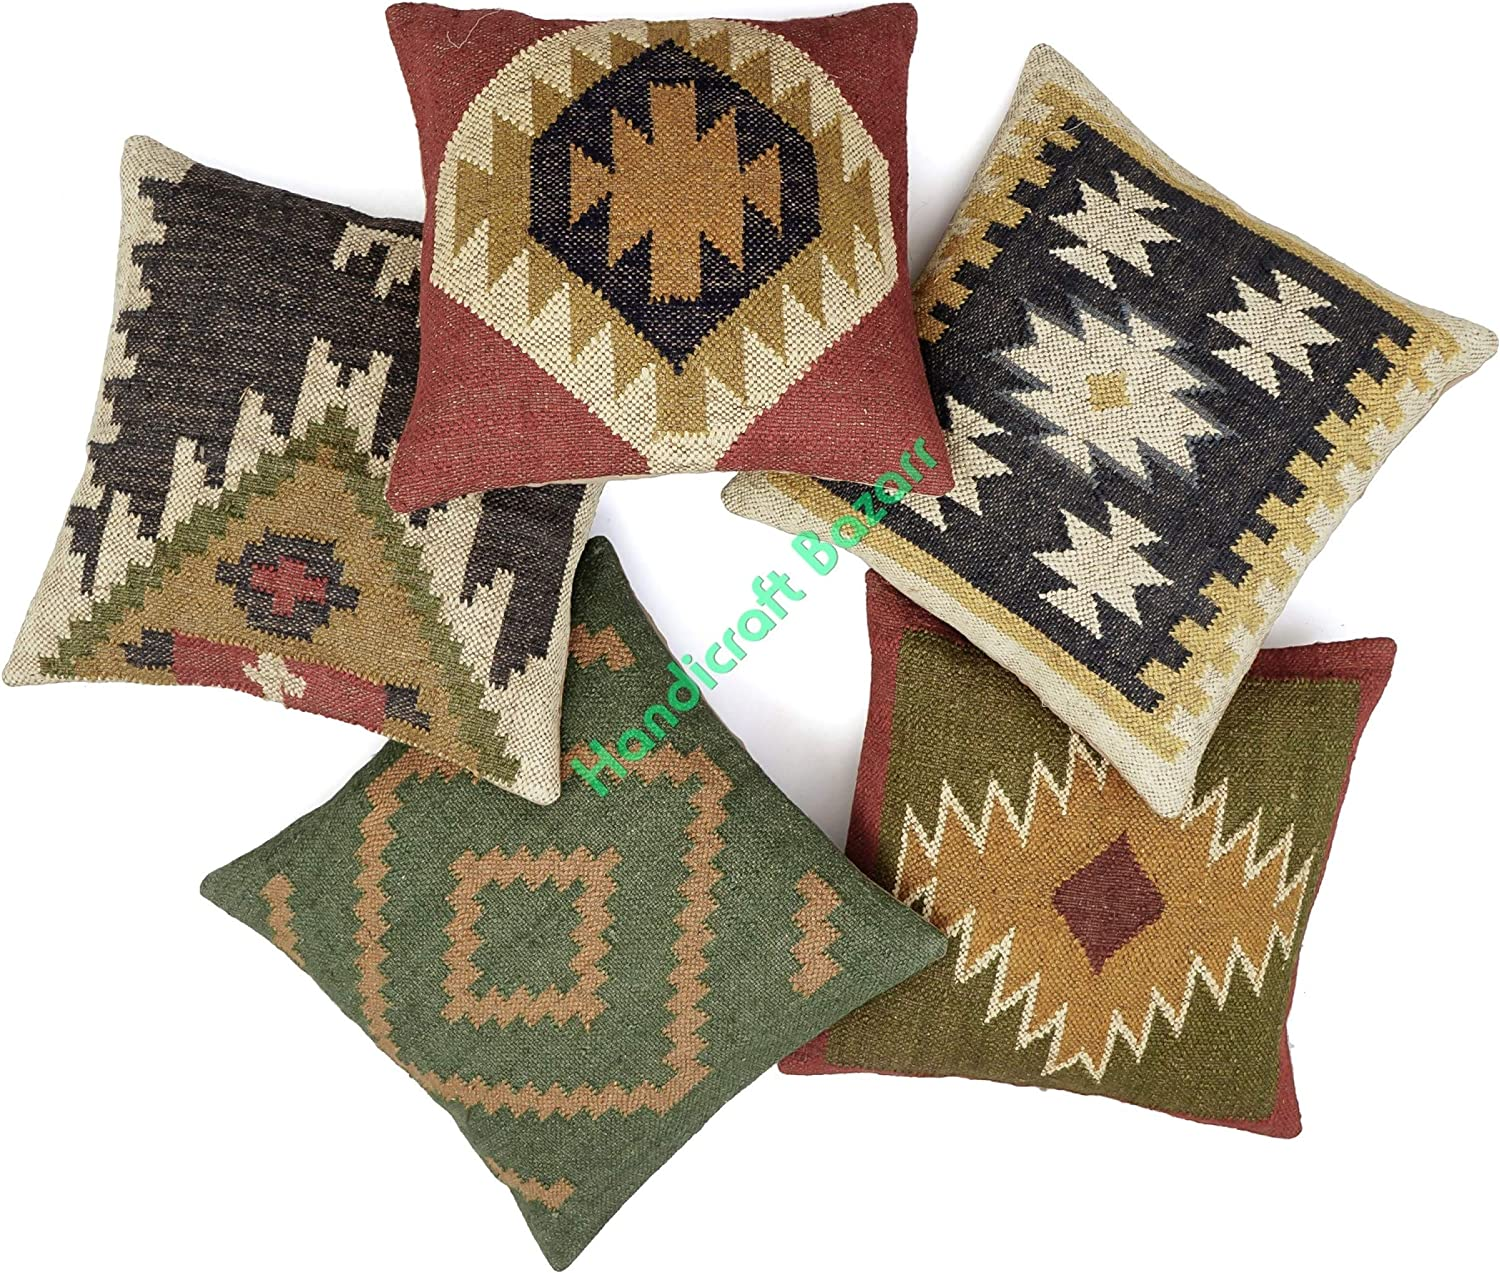 Handicraft Bazarr Ethnic Manufacturer OFFicial shop Throw Cushion Cover Traditional Decor J In a popularity